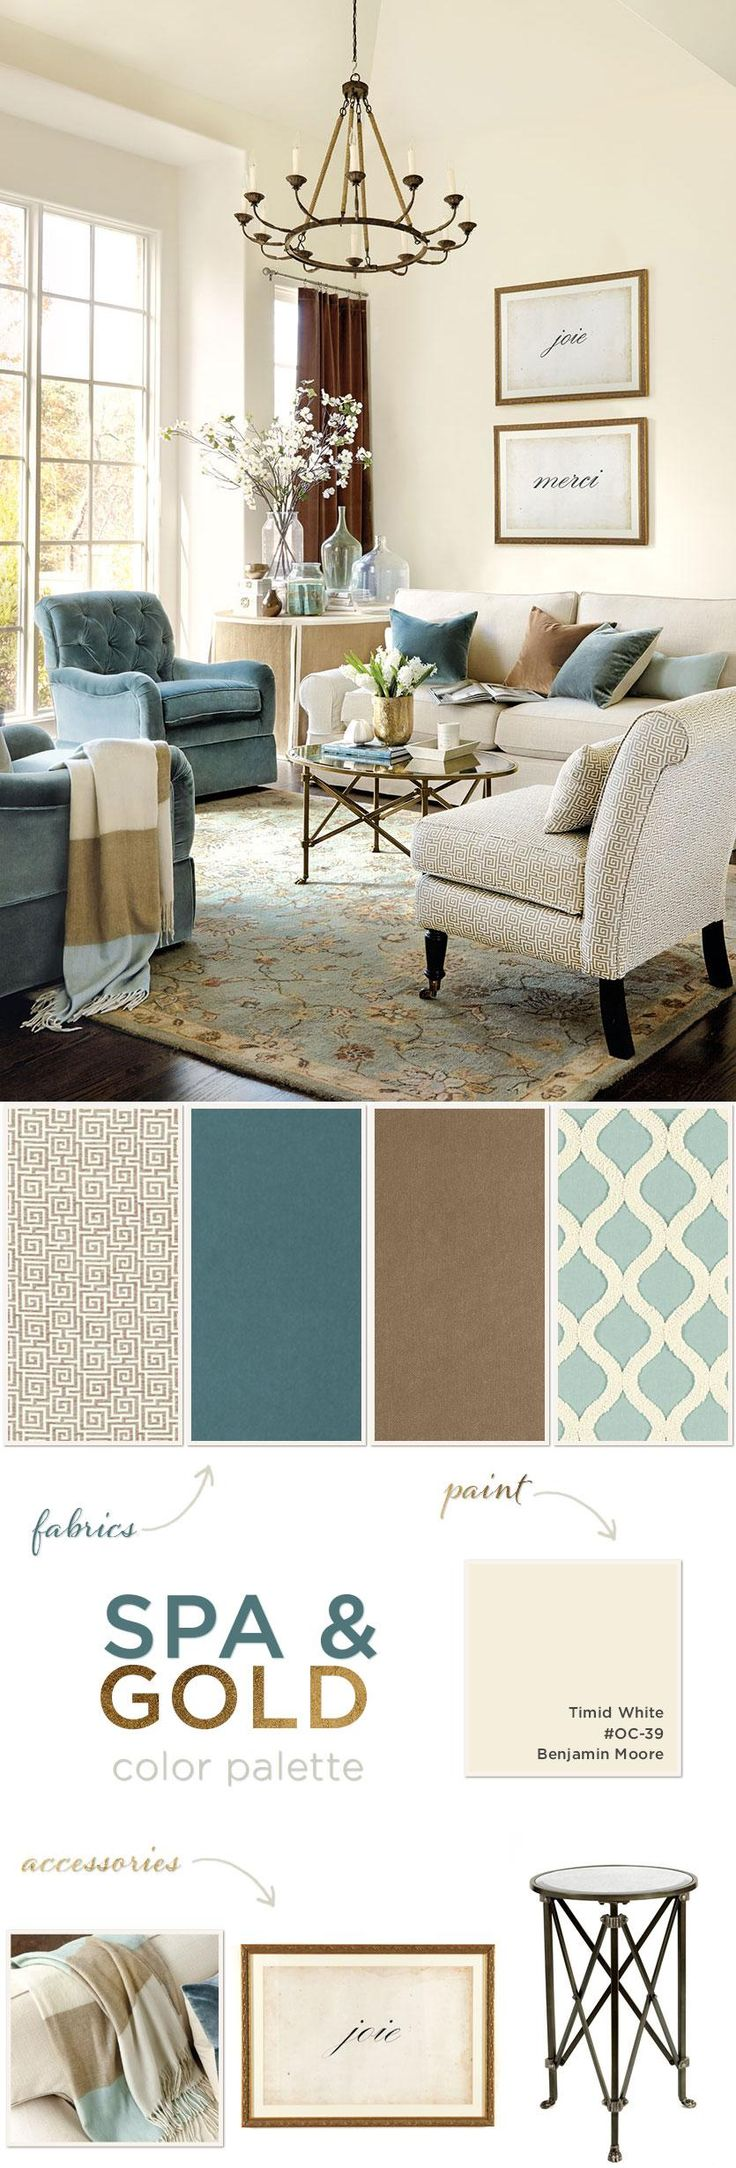 Room color ideas for living room - Inspired Color Palettes For Spring 2014 Living Room